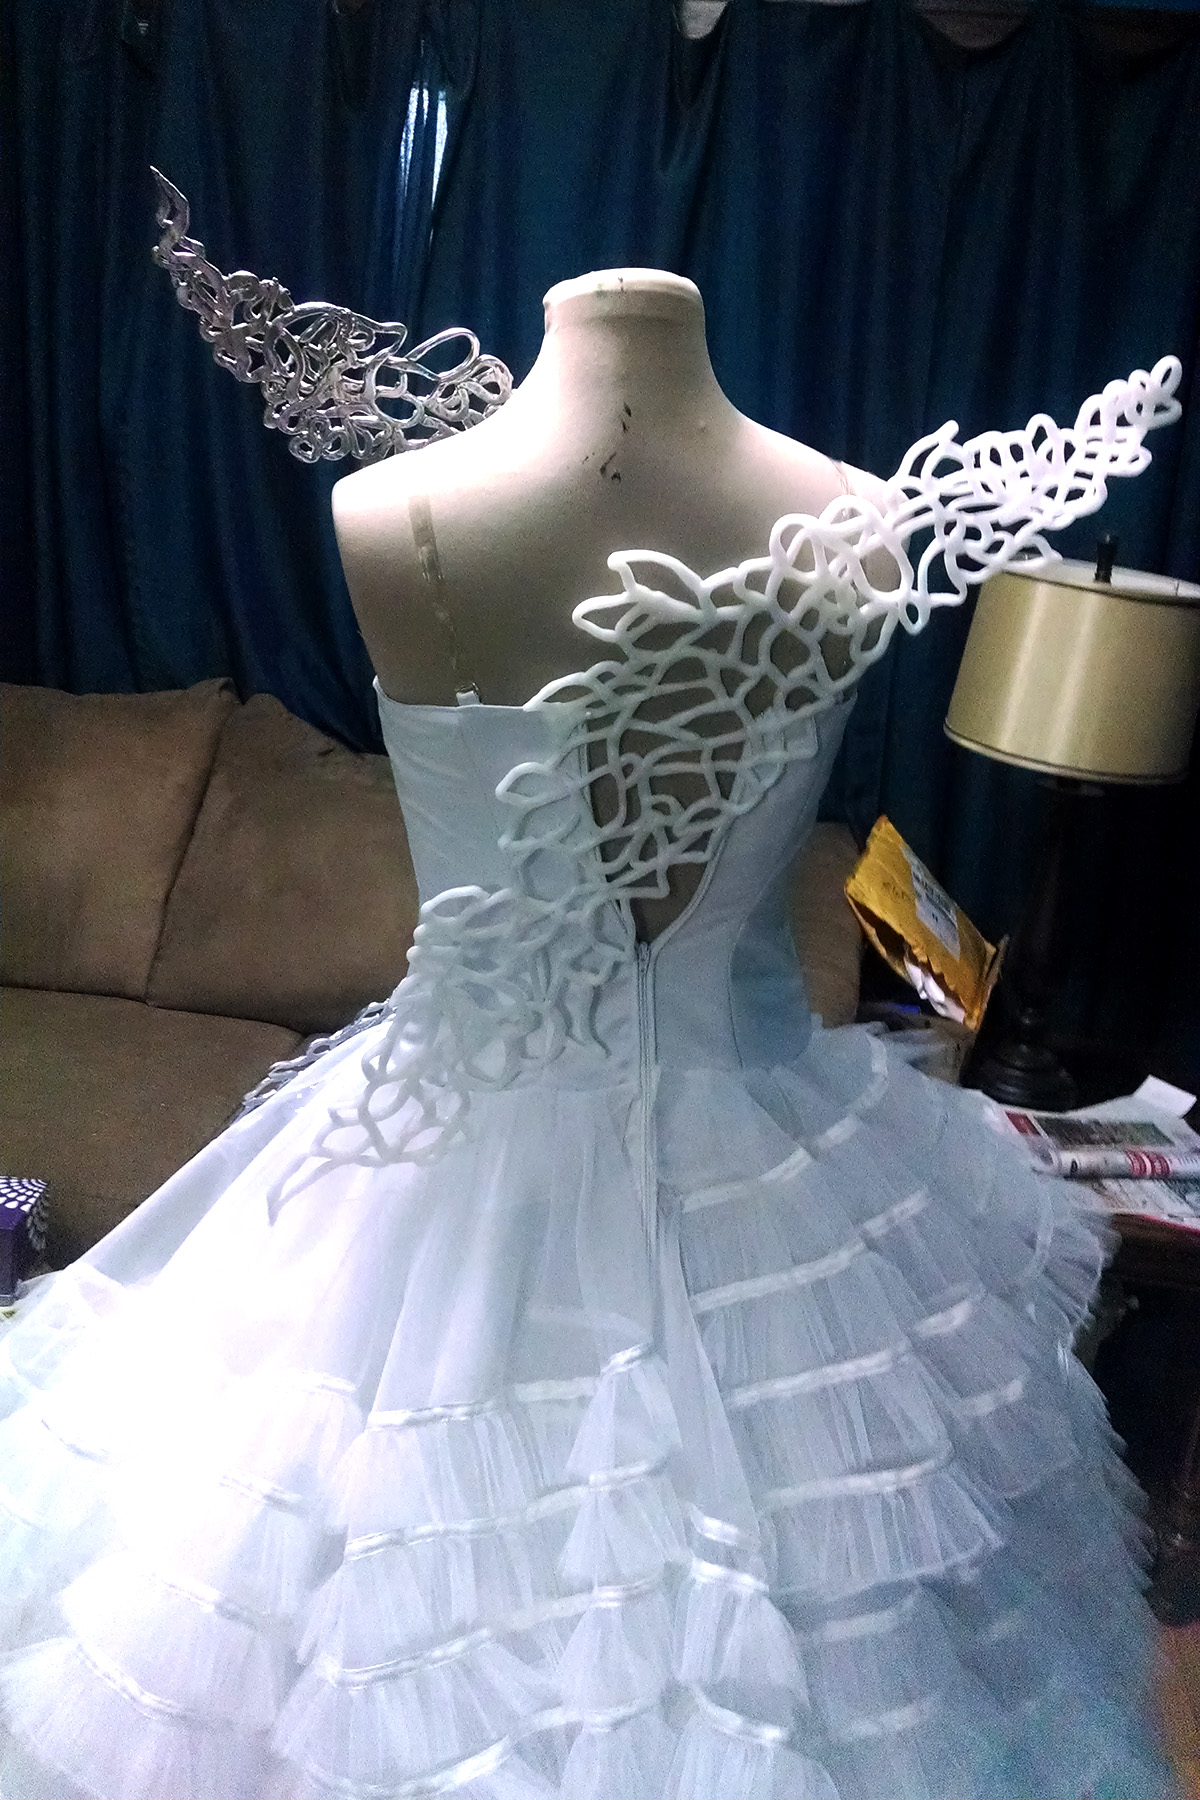 The two Katniss wings attached to the start of the Hunger Games wedding gown, on a dress form - Back view.